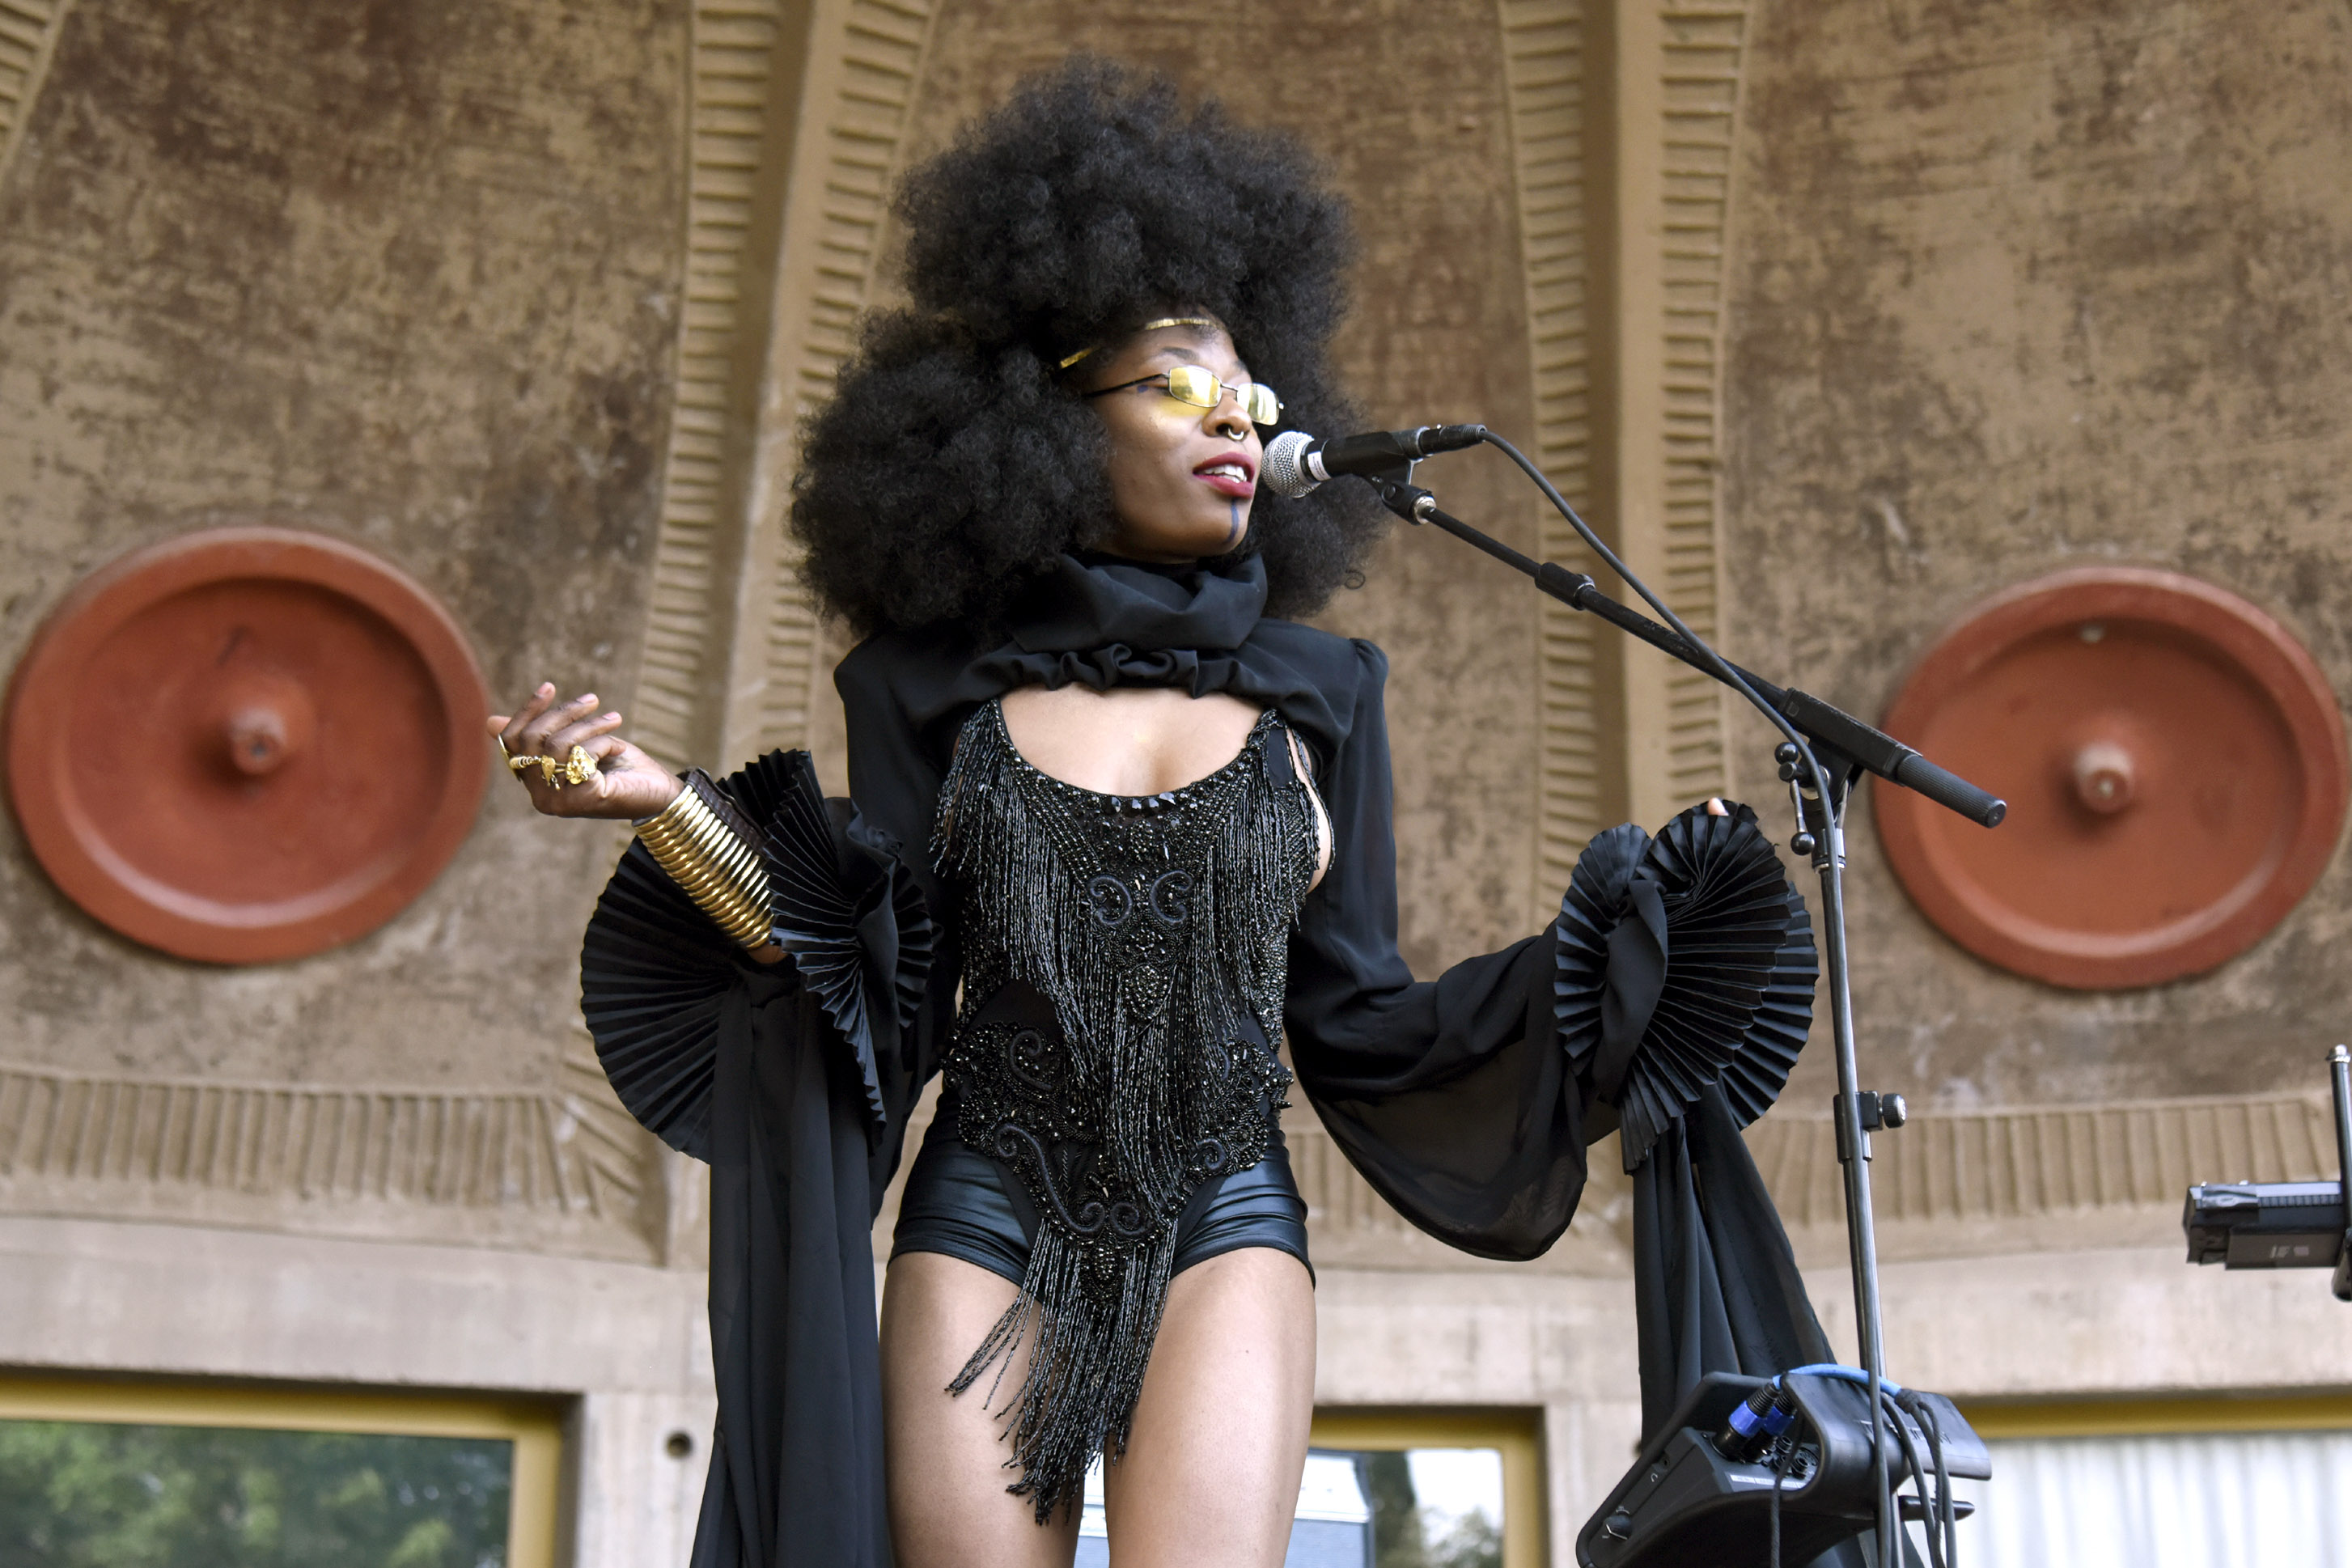 11 May 2018: Sudan Archives performing during the Form music festival in Arcosanti, Arizona, in the United States. (Photograph by Tim Mosenfelder/Getty Images)